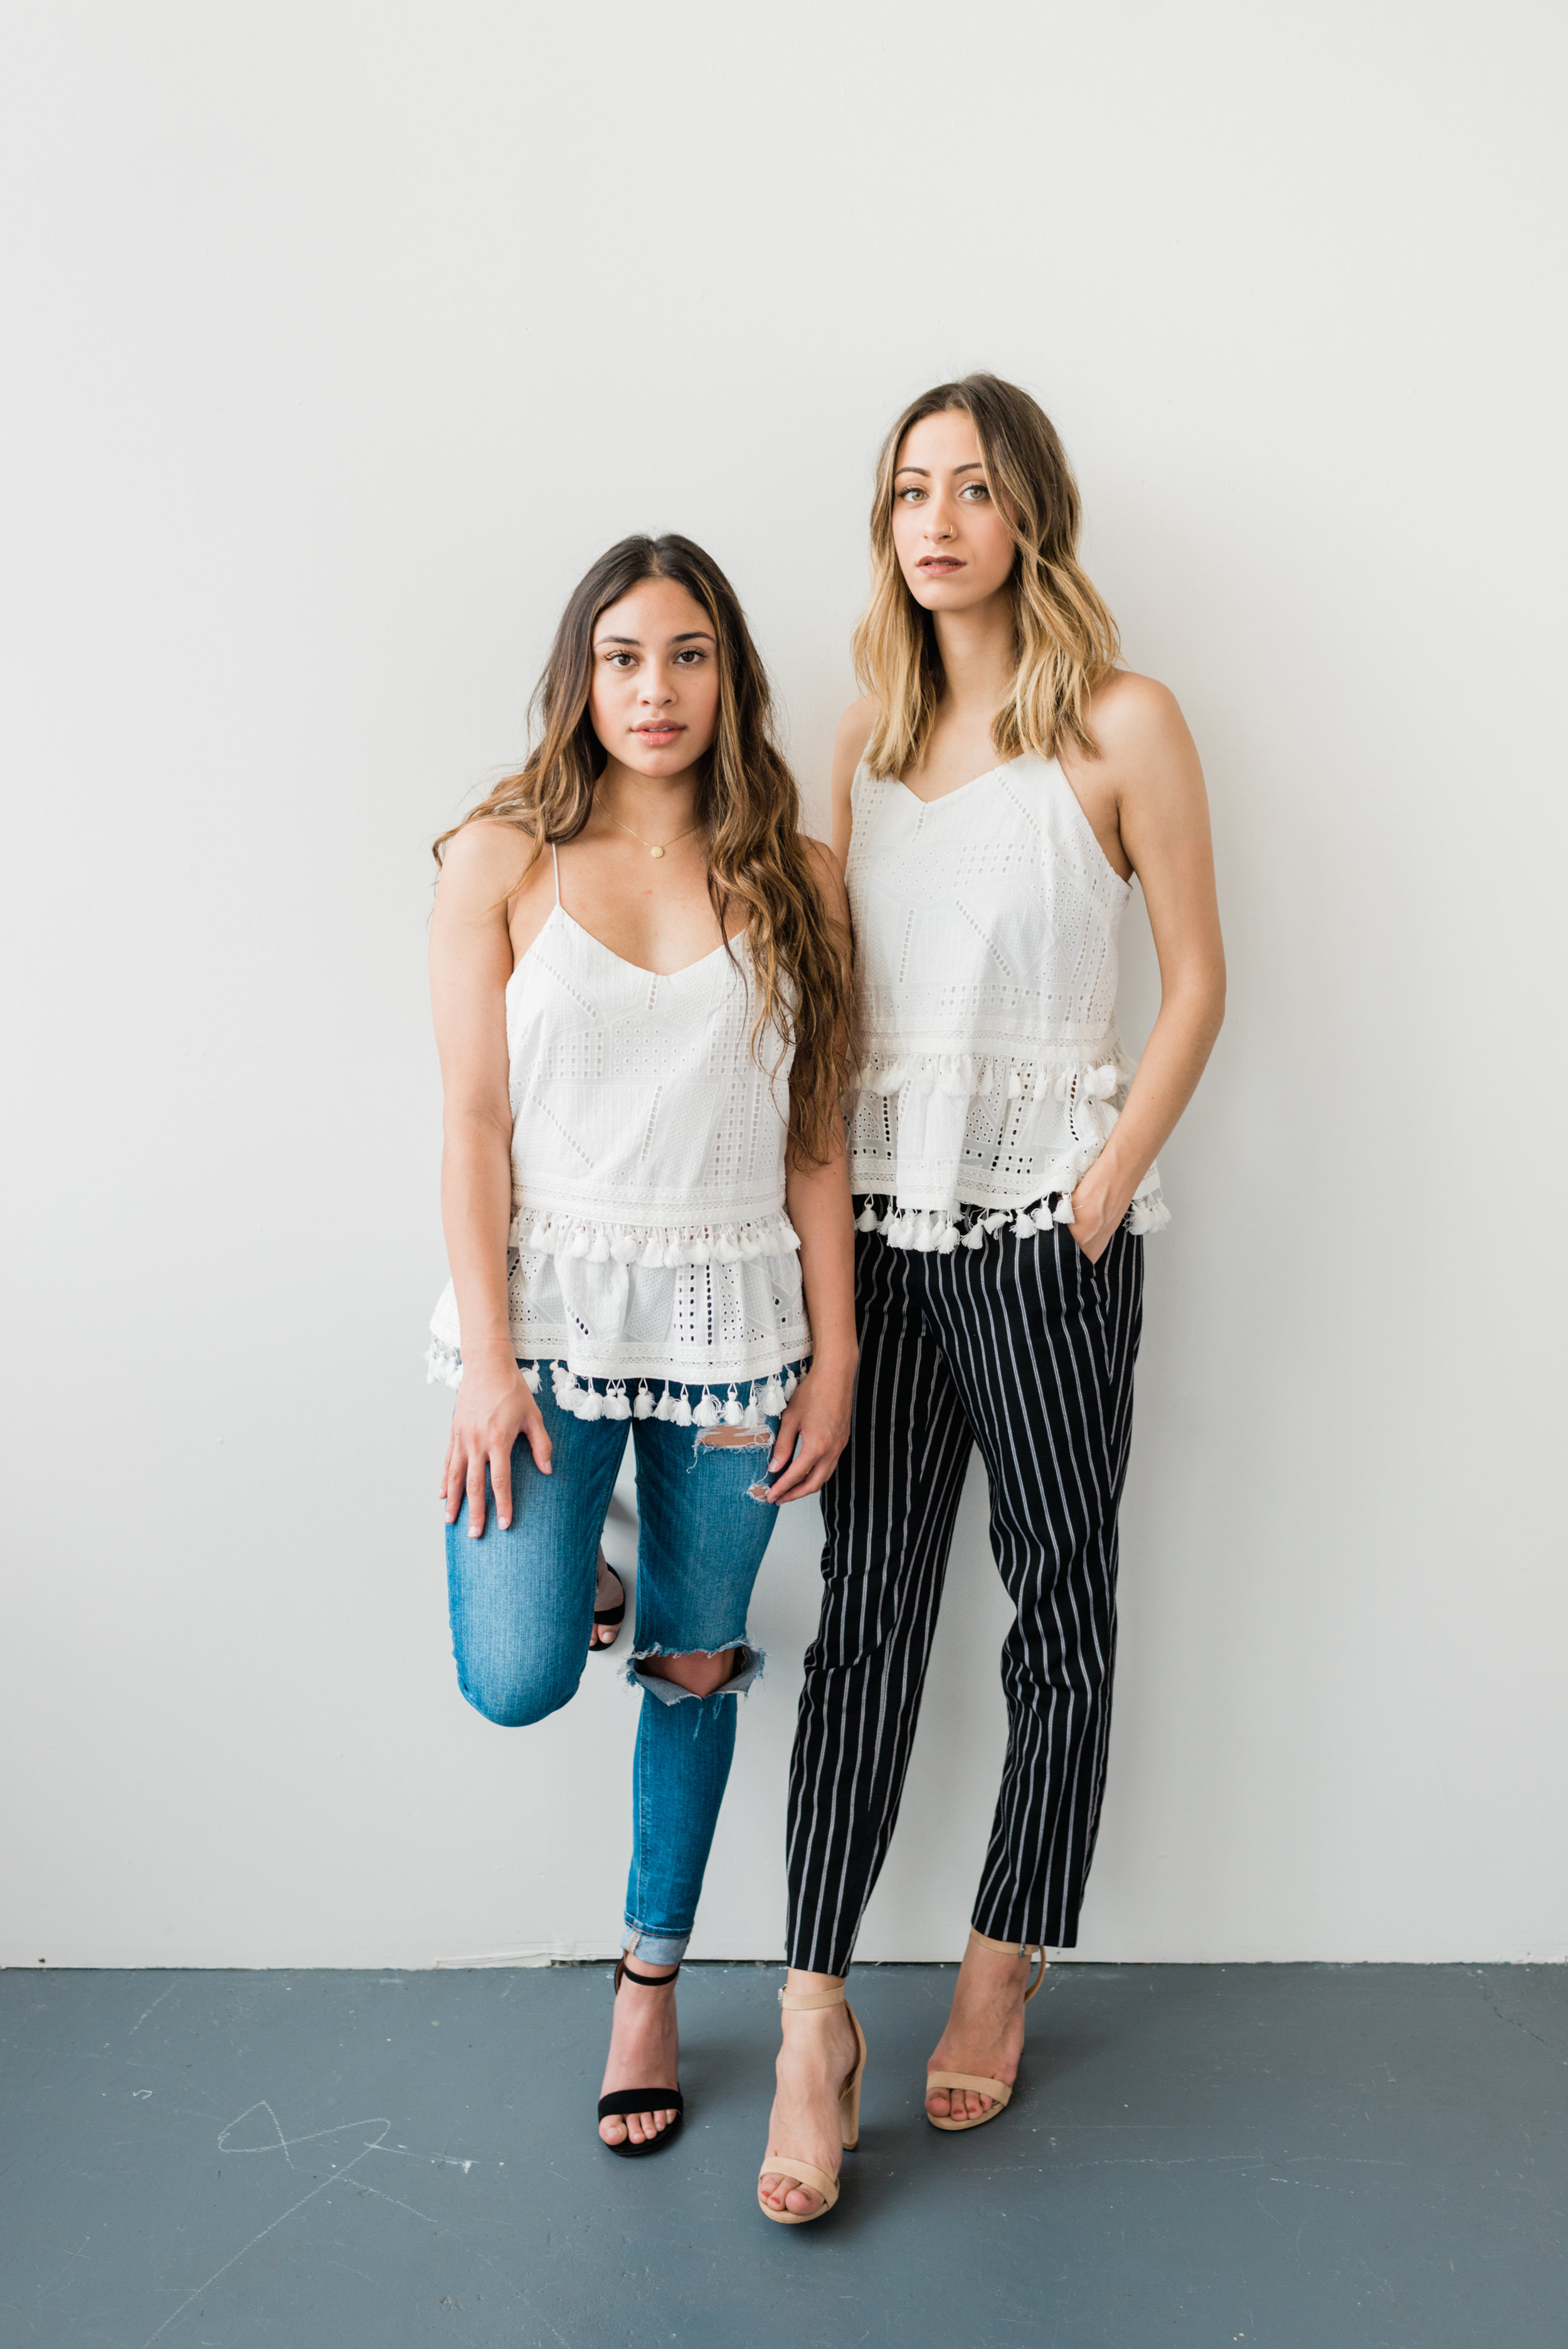 LACE AND TASSELS - These two go hand in hand so well, we count them as one. Feminine, trendy, and classic – you can't go wrong.